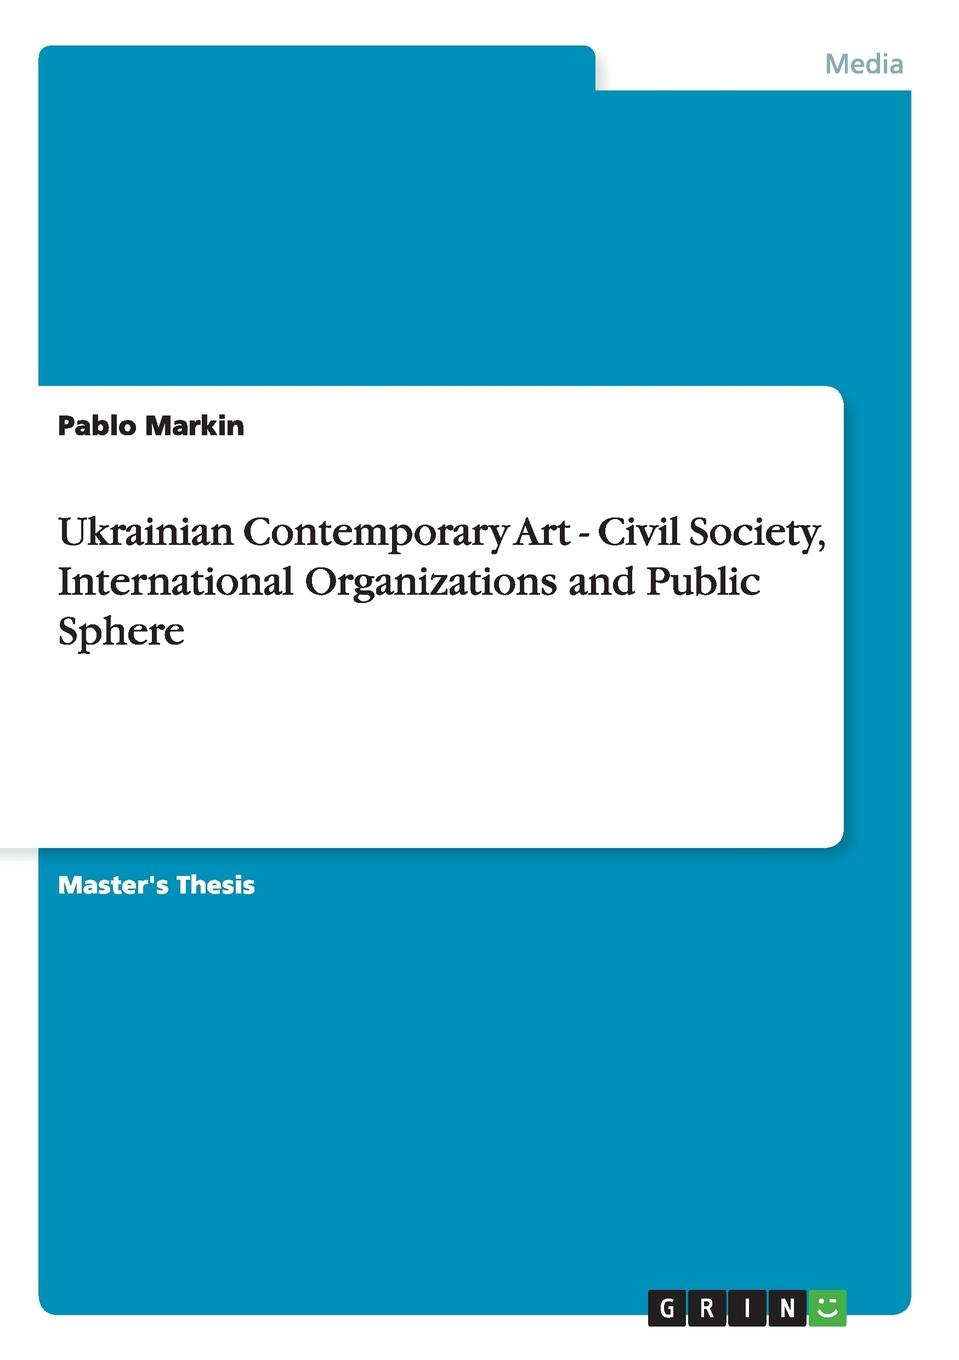 Pablo Markin Ukrainian Contemporary Art - Civil Society, International Organizations and Public Sphere lewycka m a short history of tractors in ukrainian